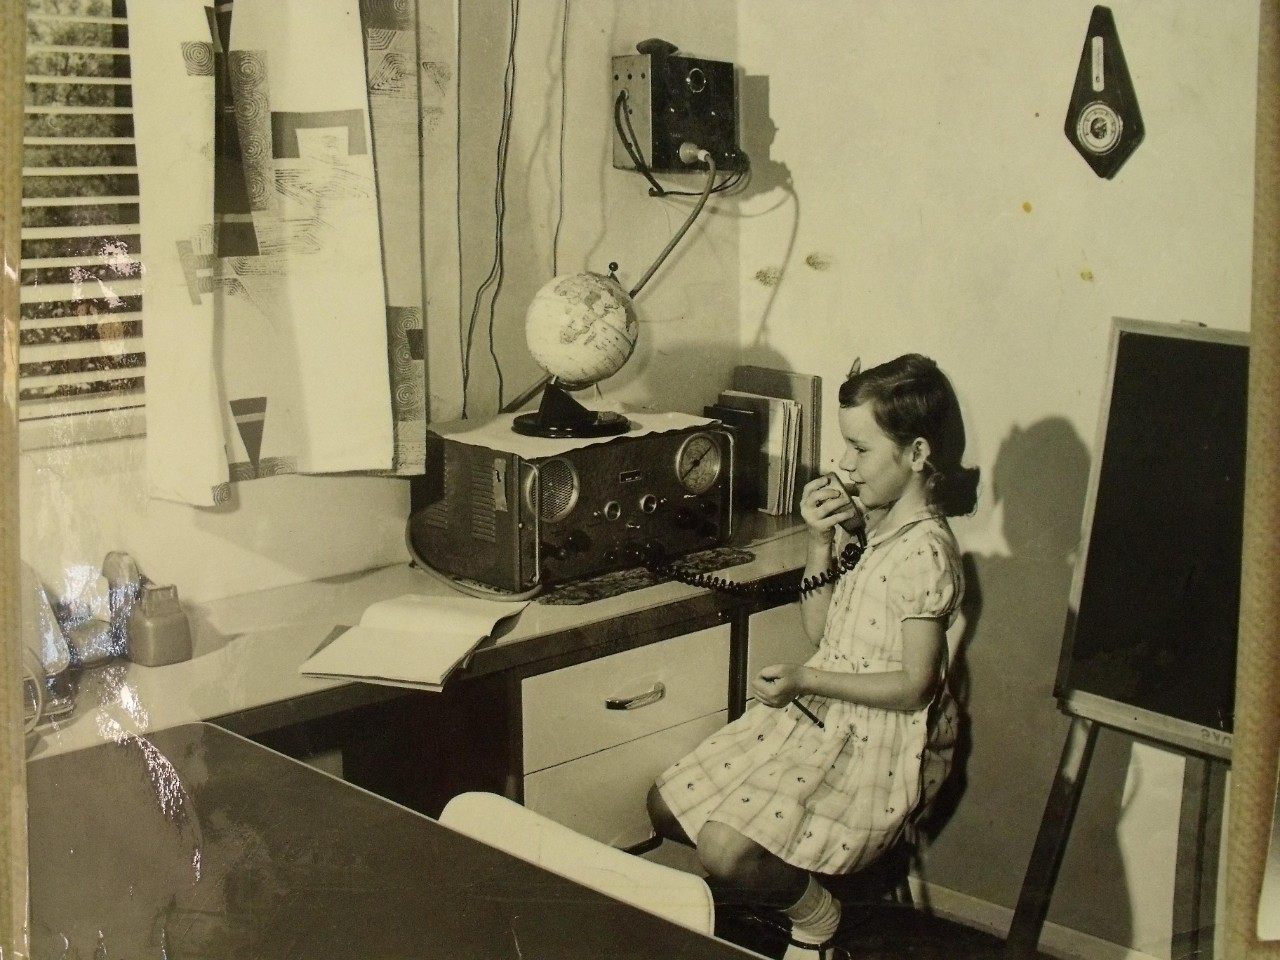 A young girl speaking over the Pedal radio